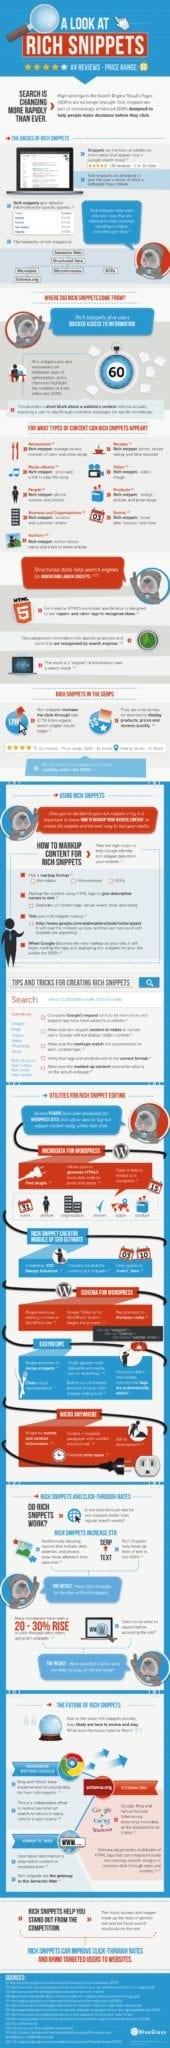 Rich-Snippets-SEO-Inbound_Aressy